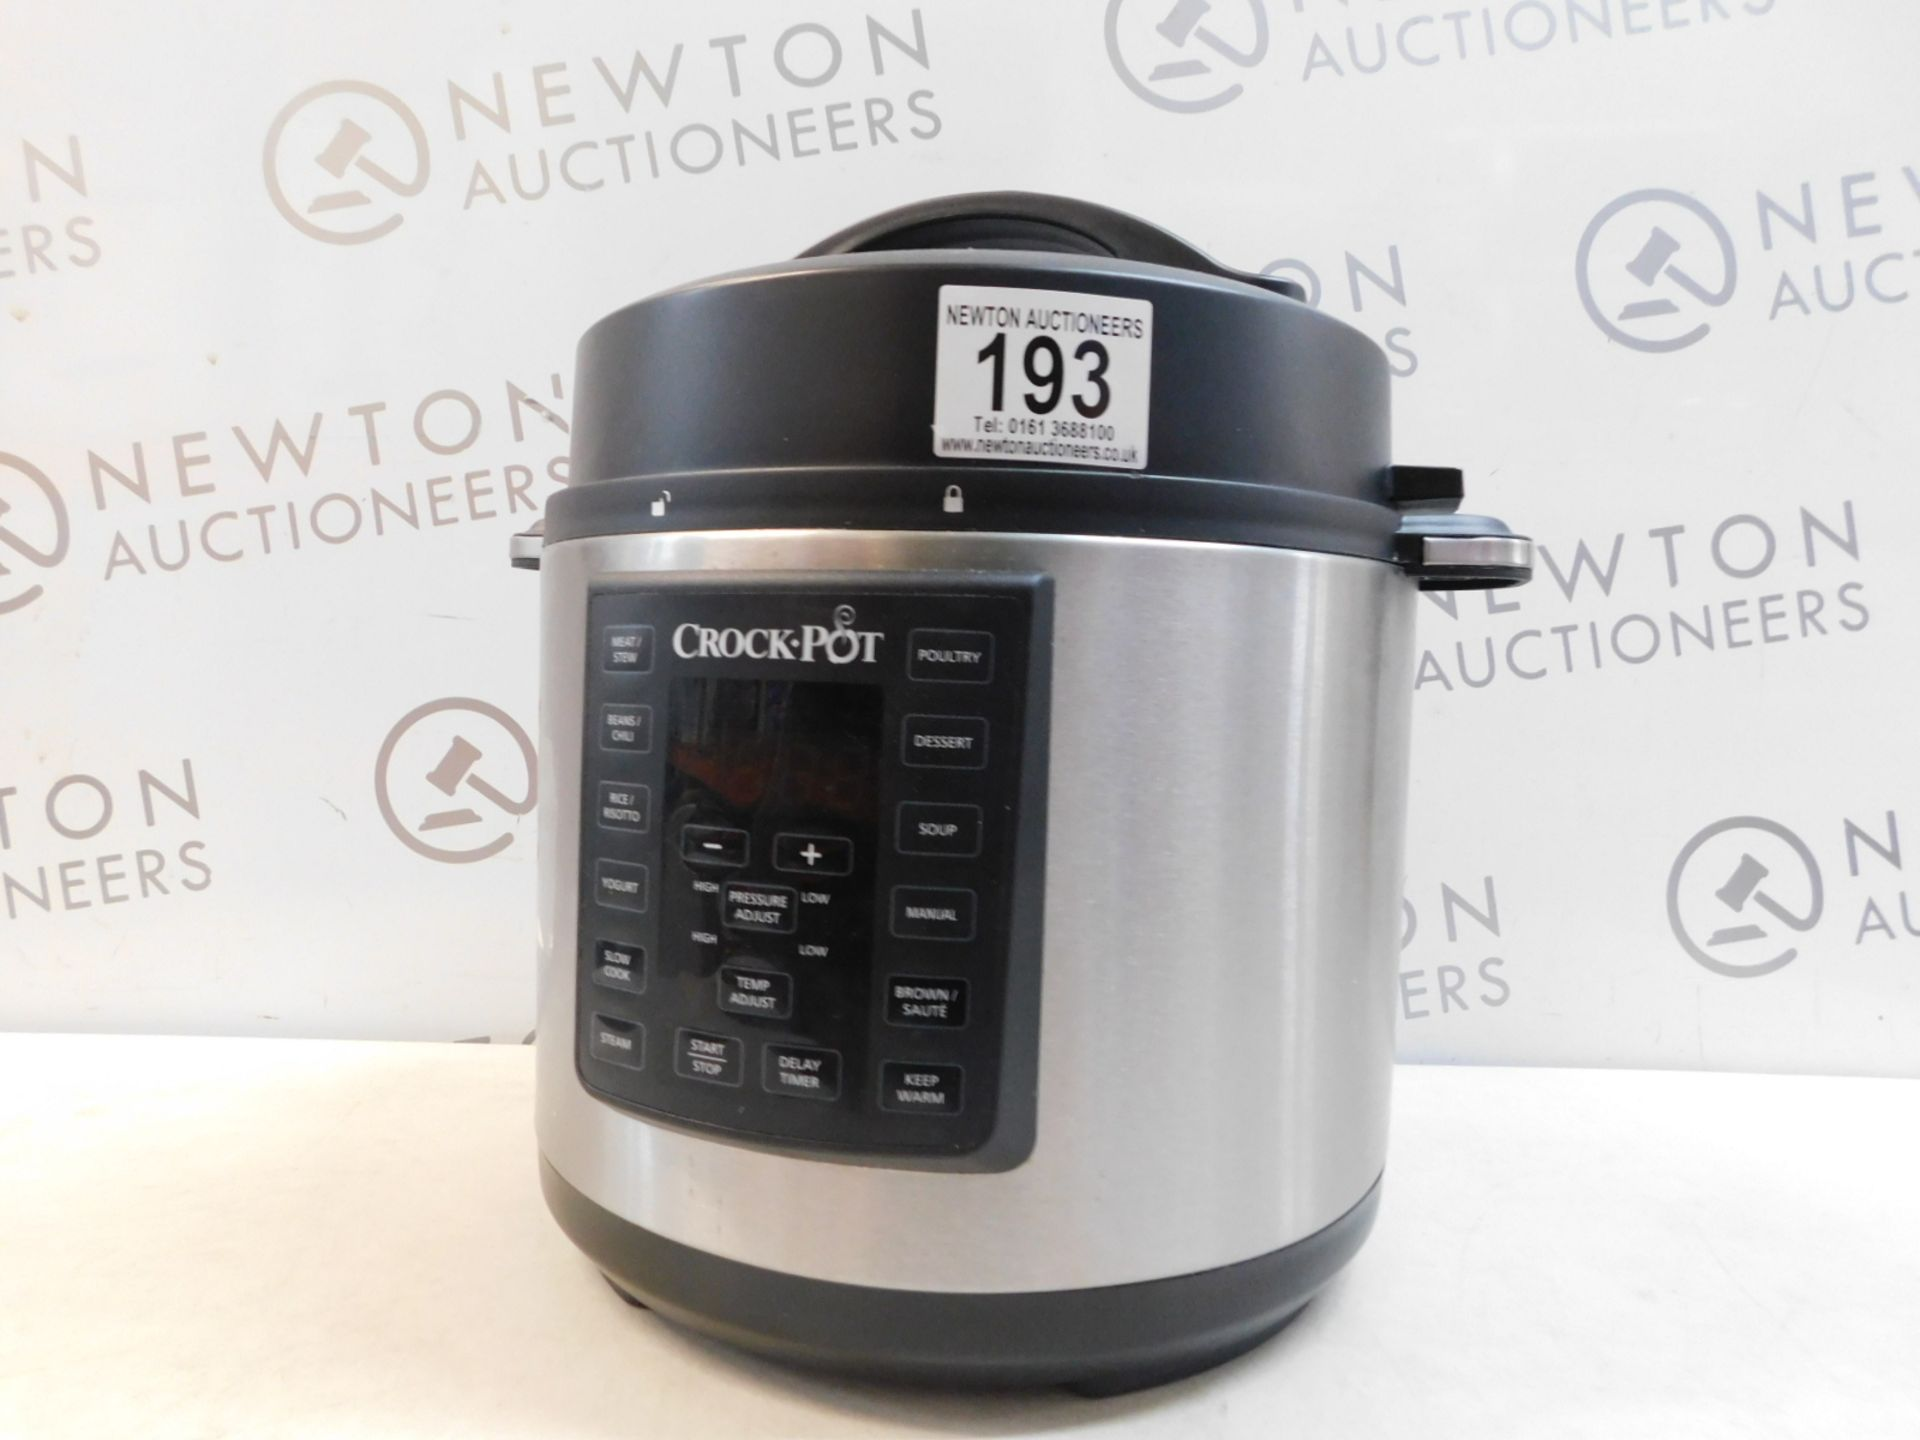 Lot 193 - 1 CROCK-POT 5.6L EXPRESS MULTI-COOKER RRP £89.99